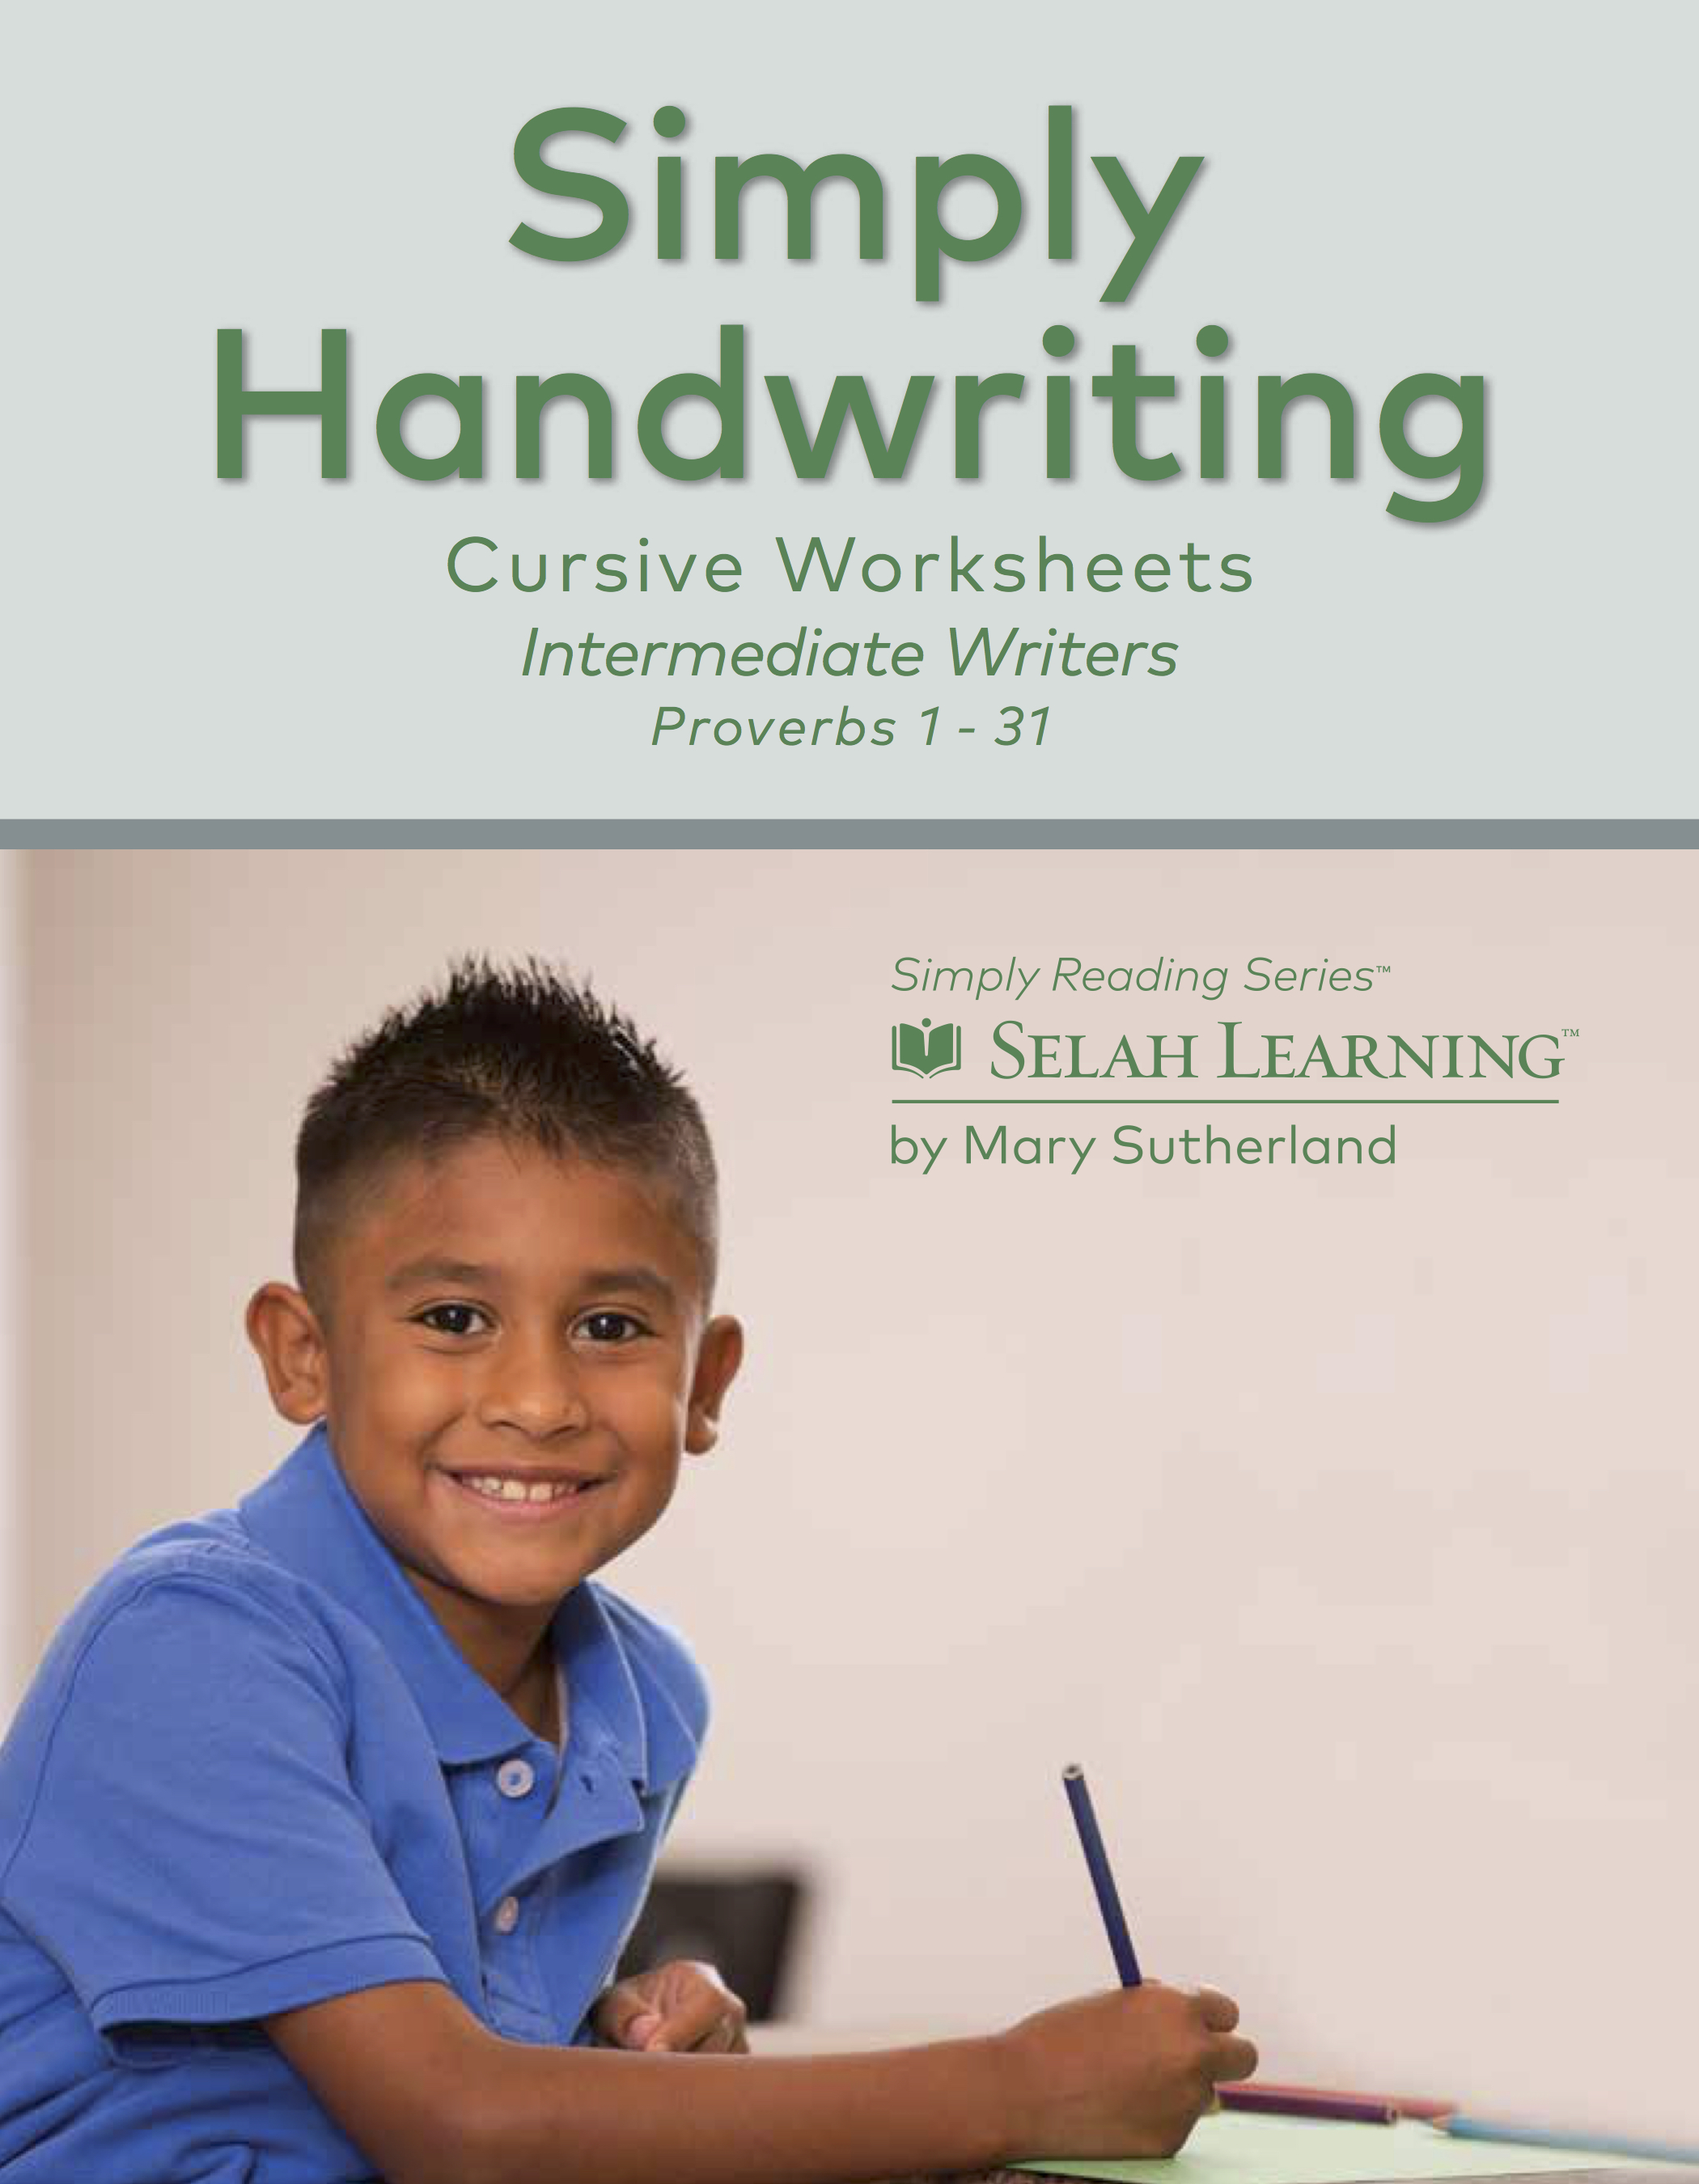 Simply Handwriting Cursive Worksheets Proverbs 1